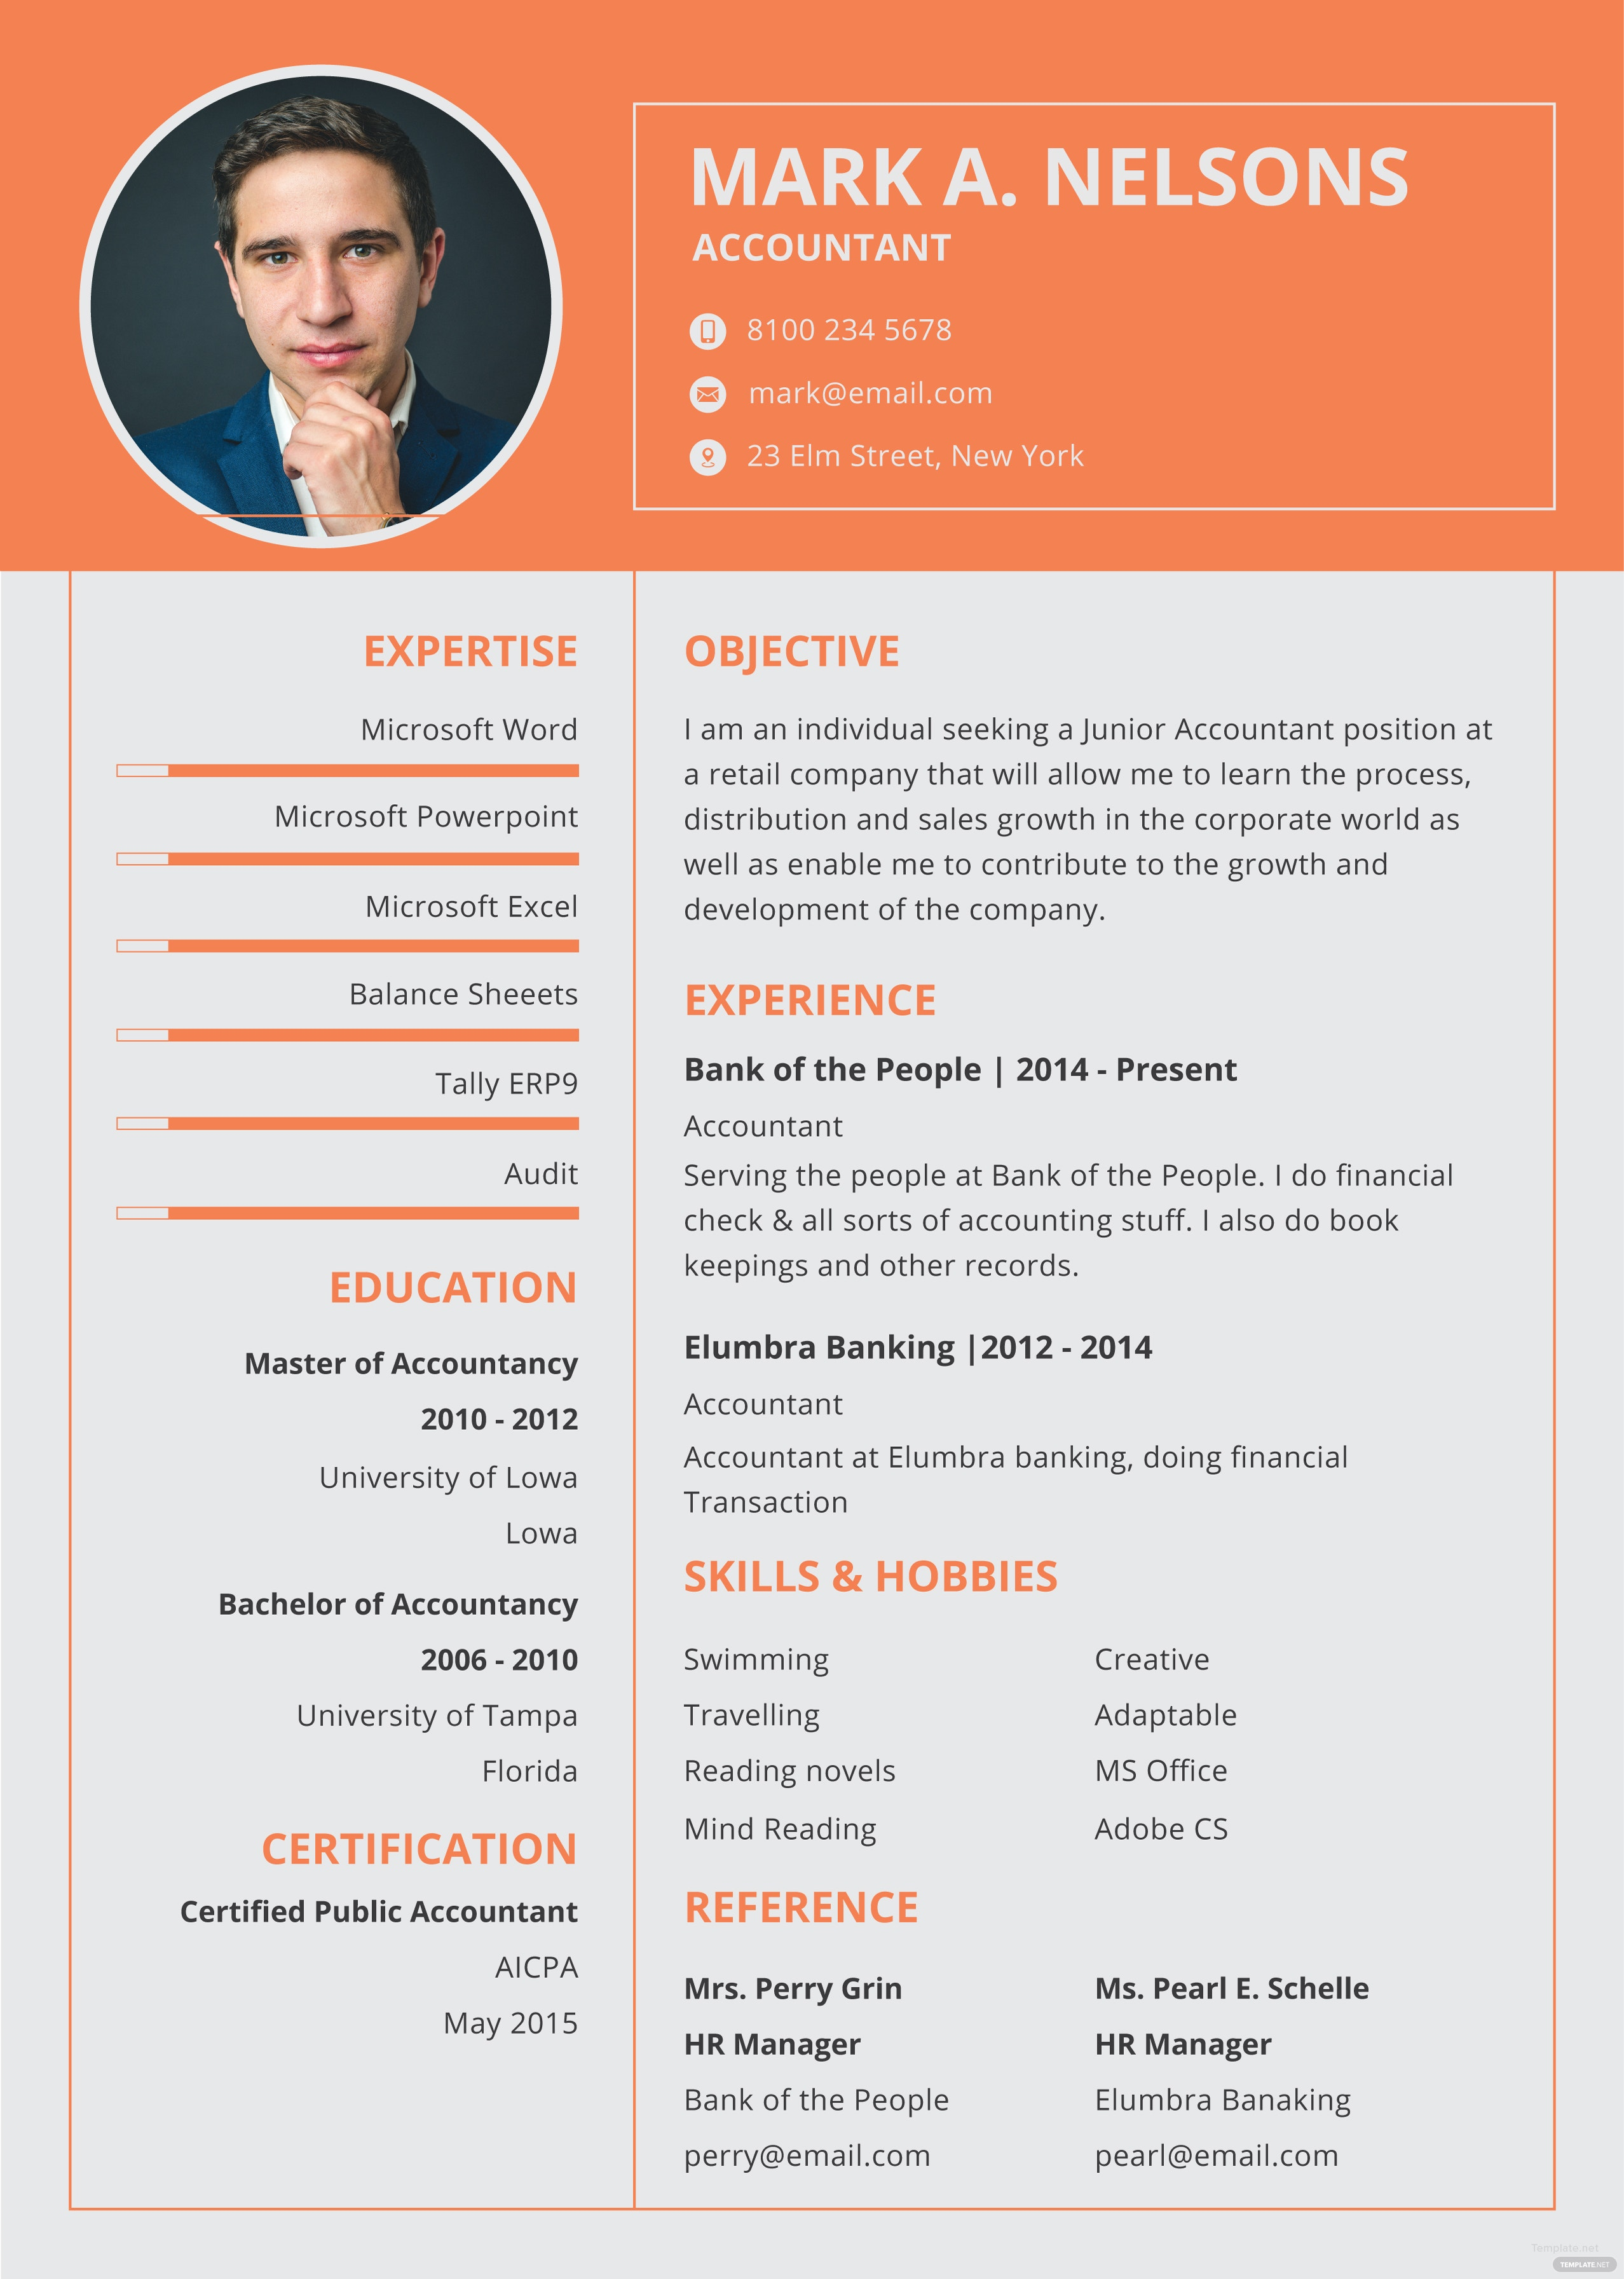 Free Experienced Accountant Resume and CV Template in Adobe ...